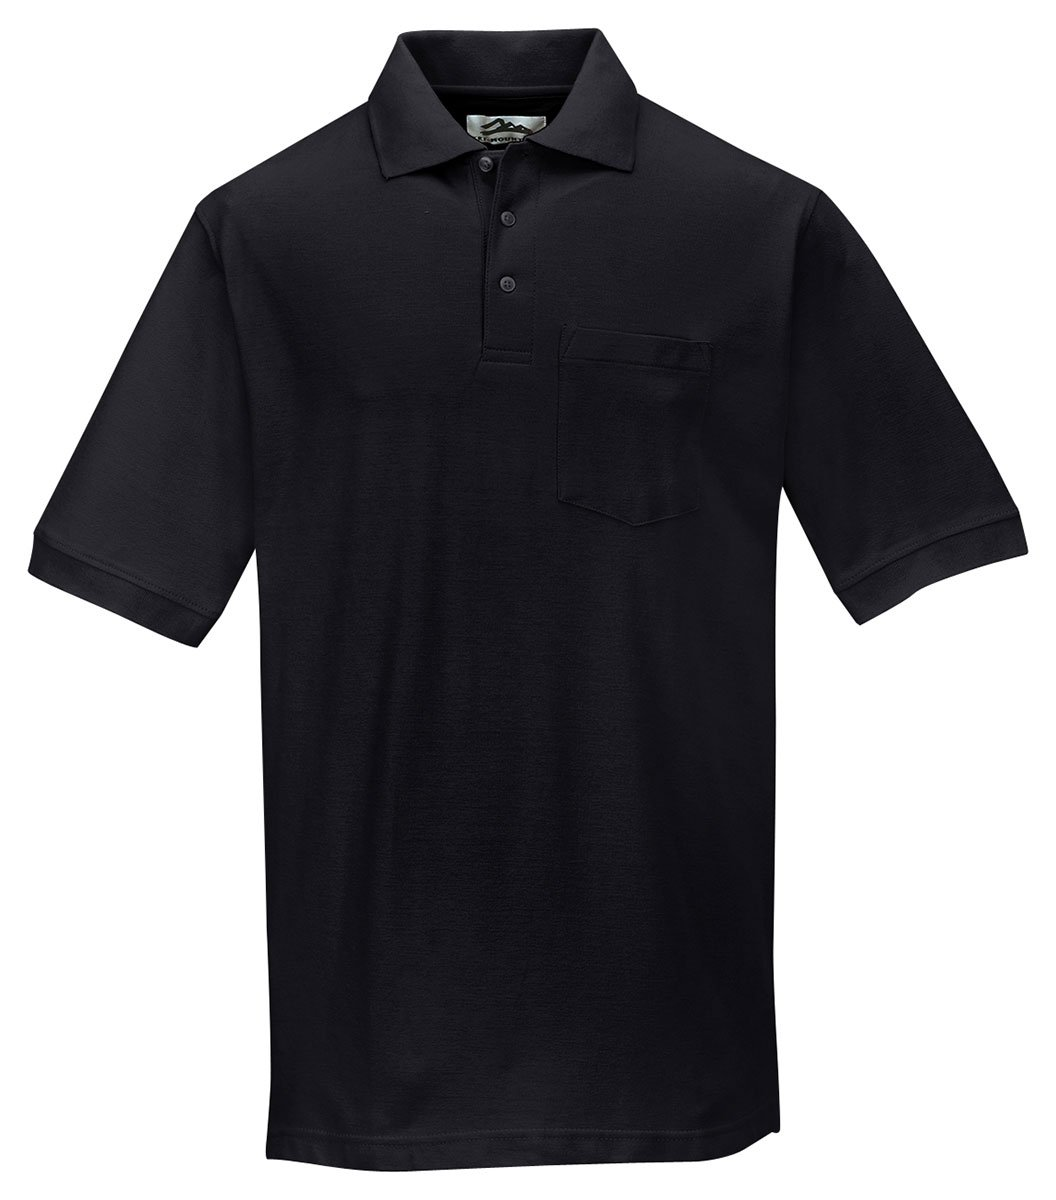 Polo Pique Cotton Tri Mountain Mens Shirt